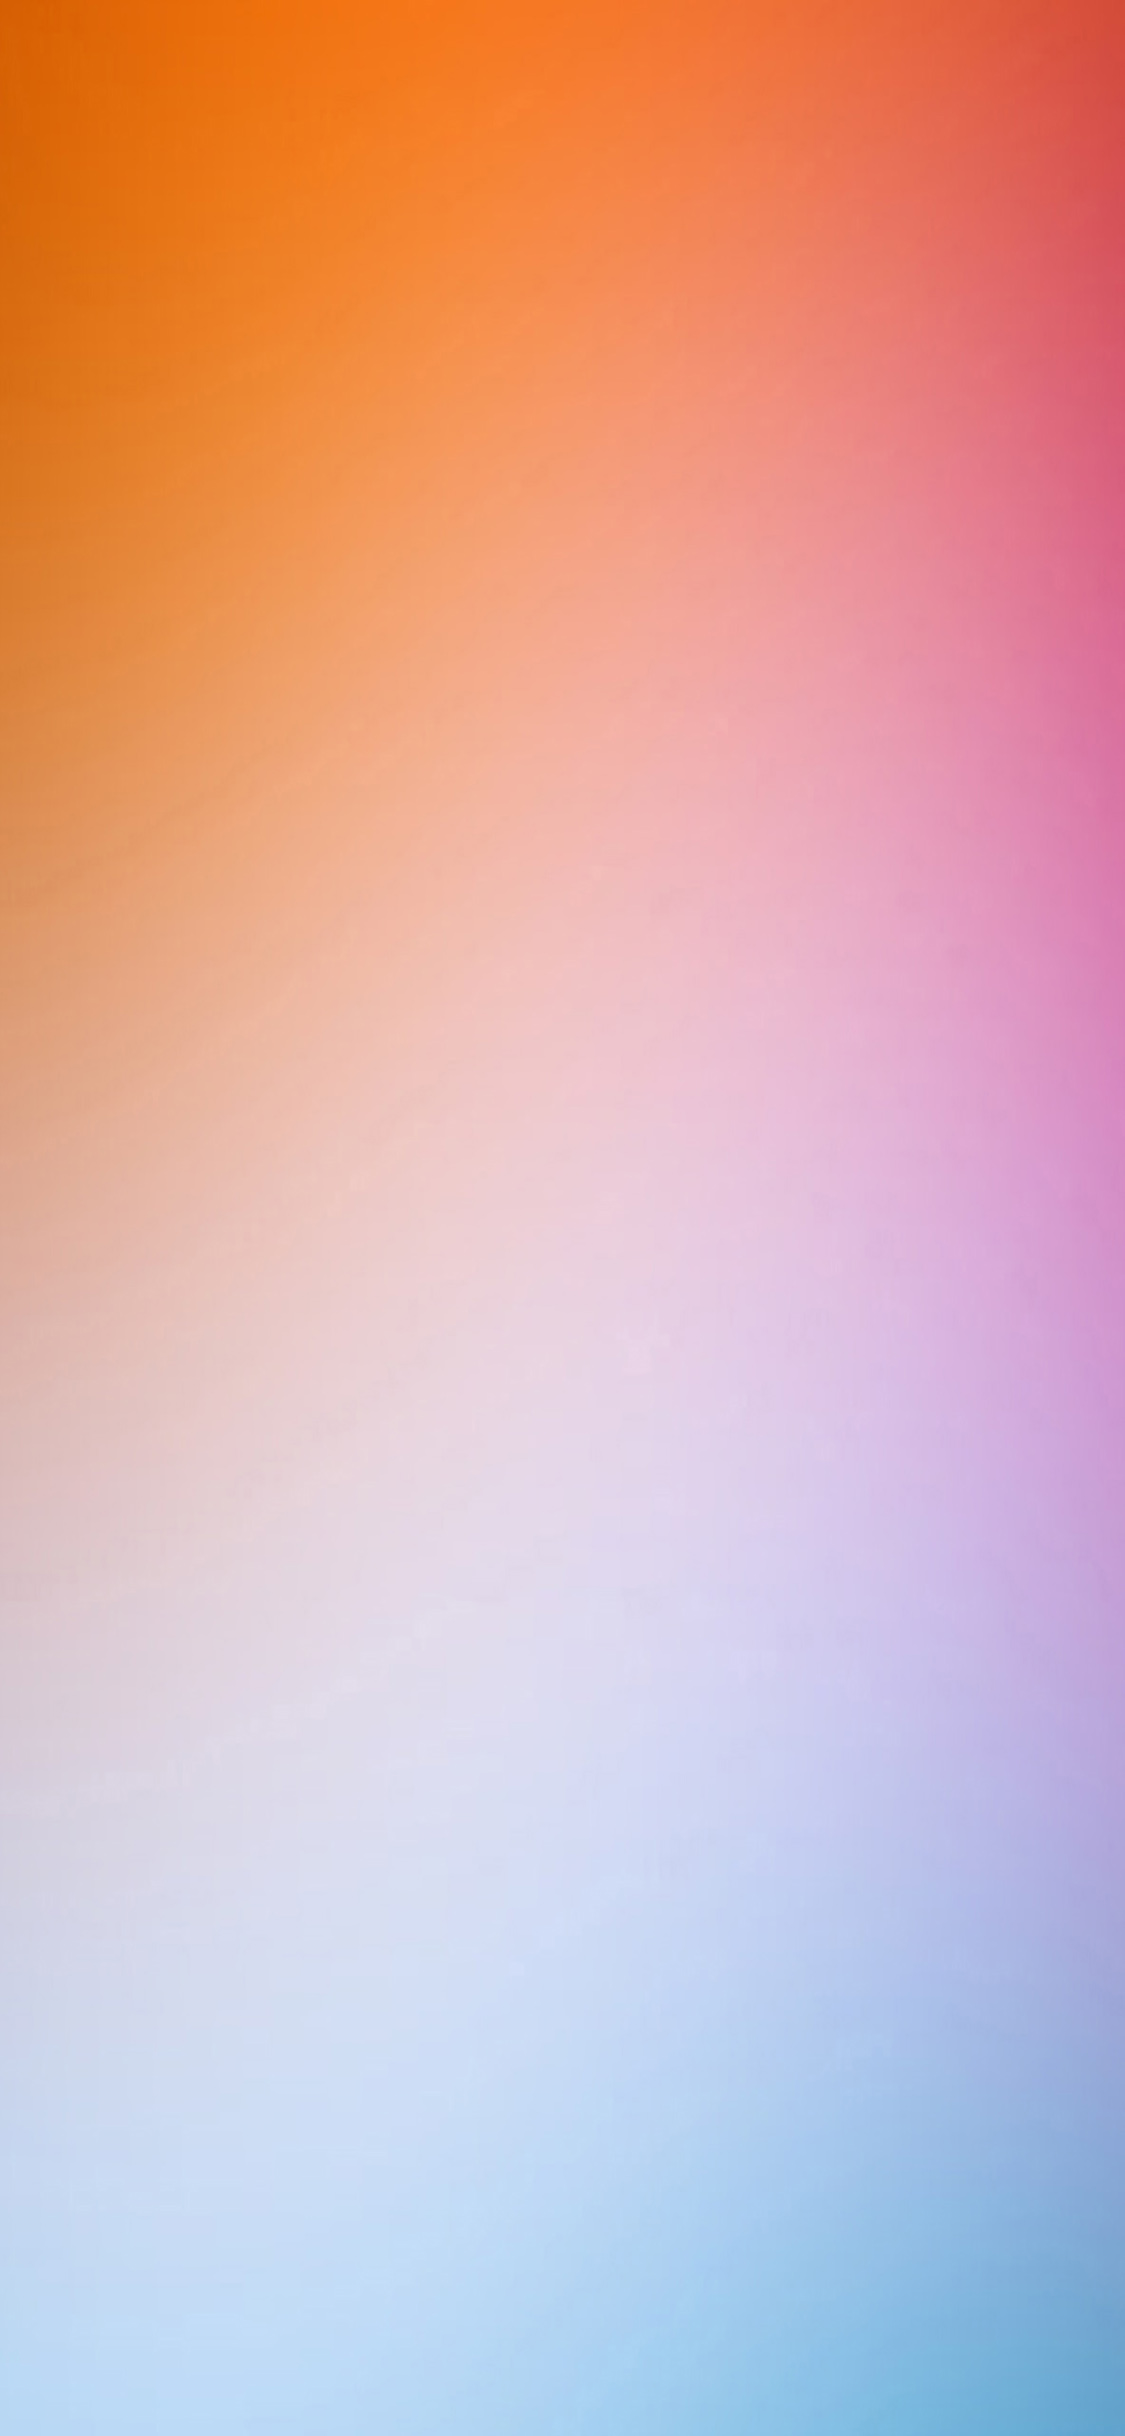 iPhoneXpapers.com-Apple-iPhone-wallpaper-sg14-red-yellow-soft-gradation-blur